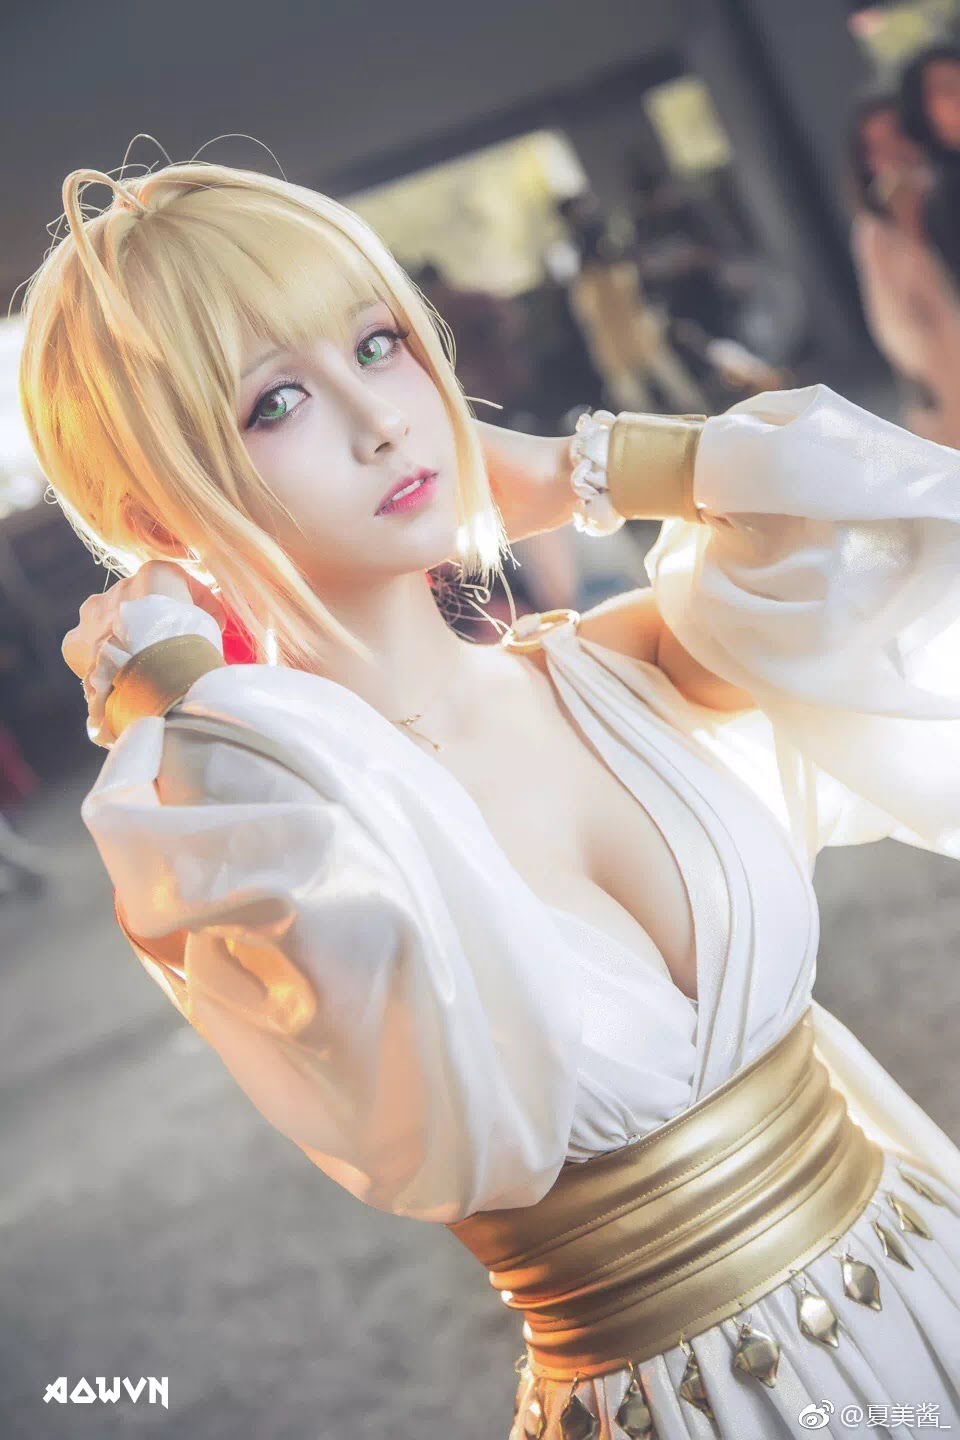 AowVN.org minz%2B%252810%2529 - [ Cosplay ] Nero - Saber anime Fate by Xia Mei Jiang tuyệt đẹp | AowVN Wallpapers